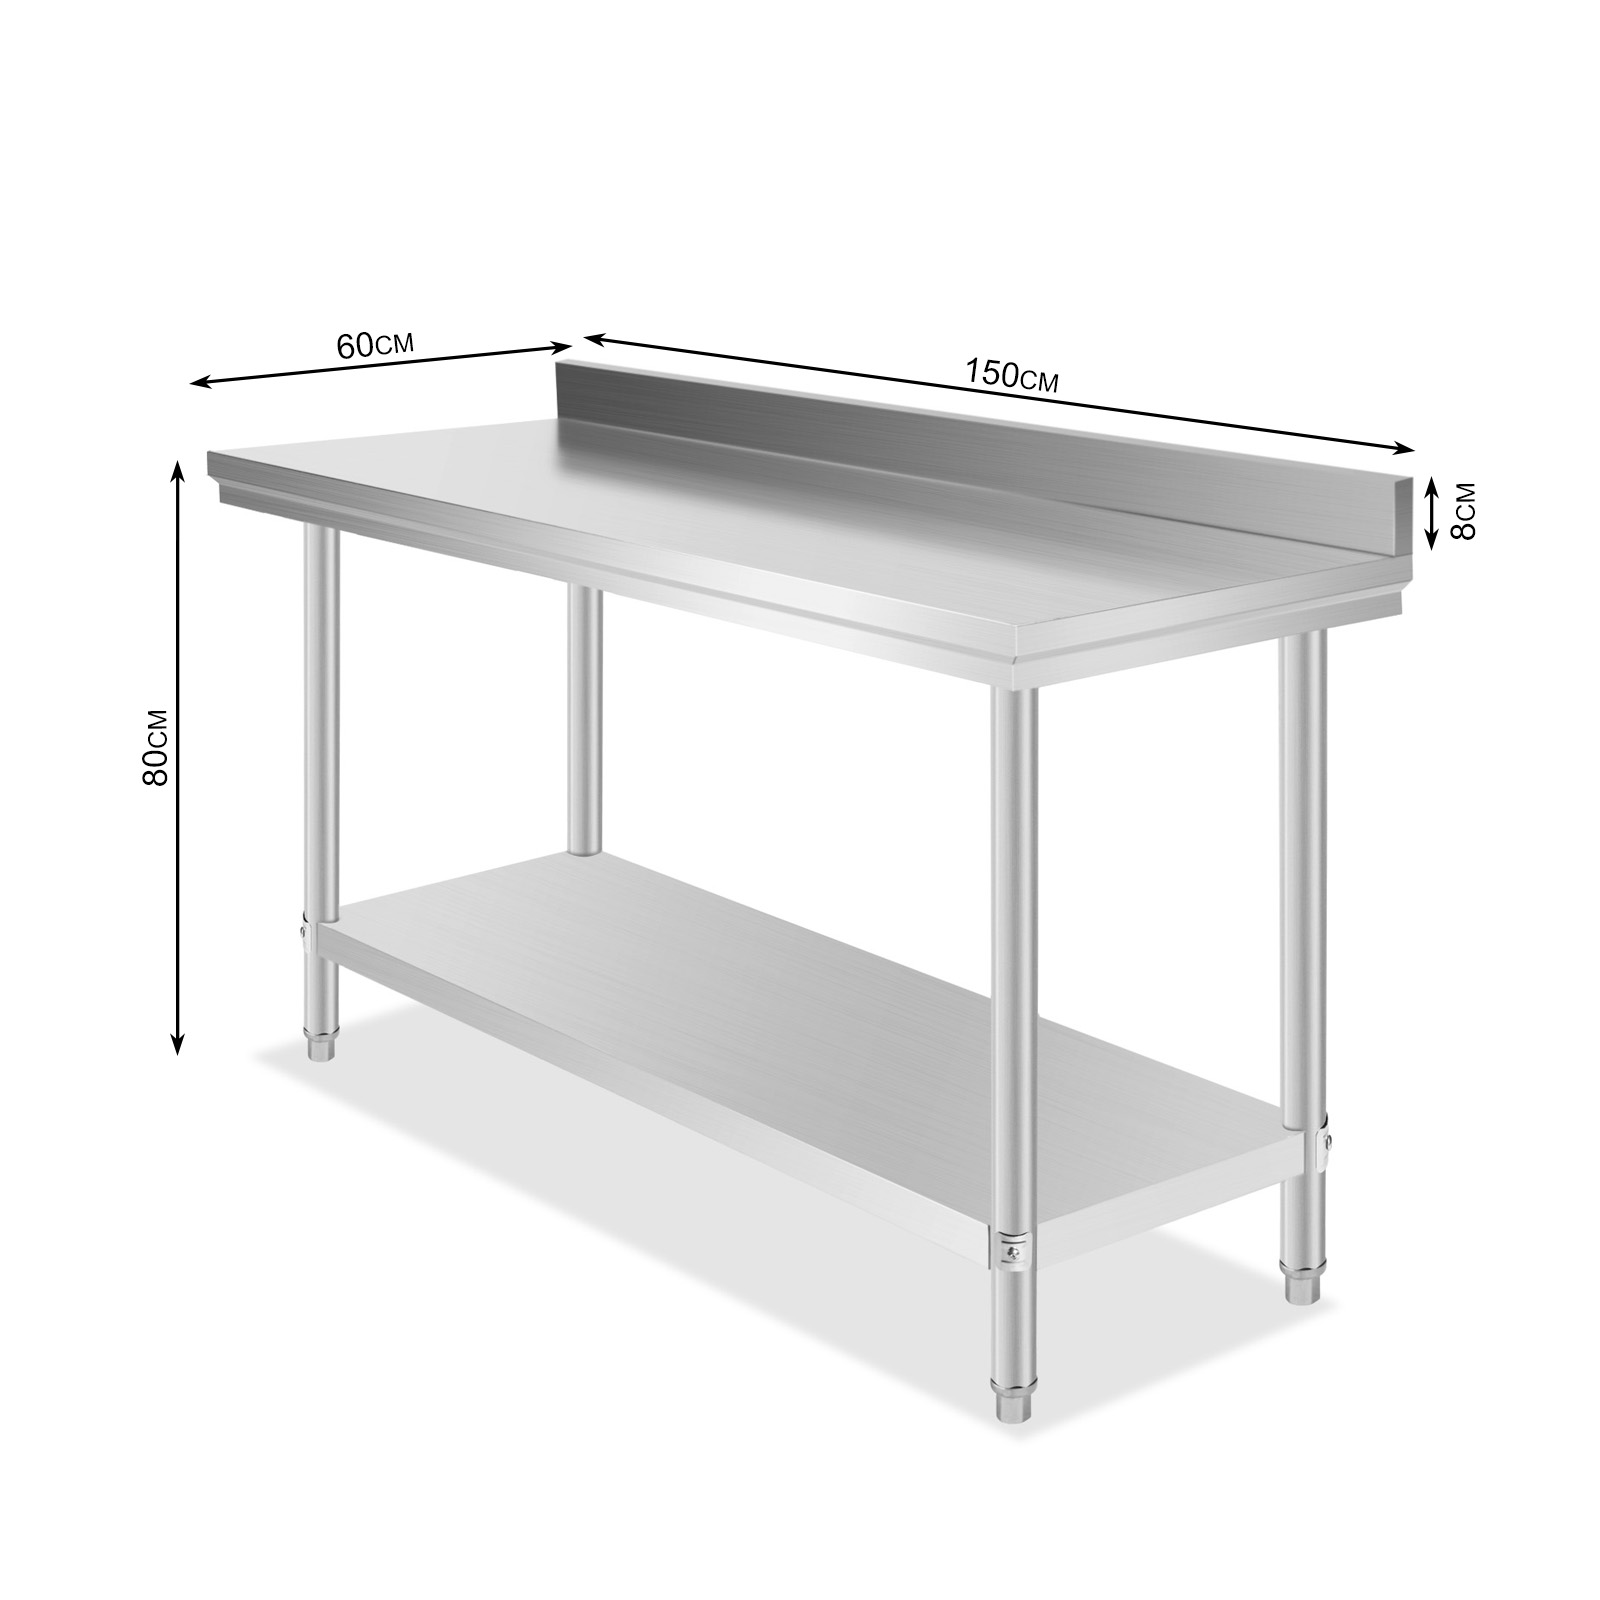 kitchen food preparation table cabinets madison wi commercial stainless steel work prep 60 x 24